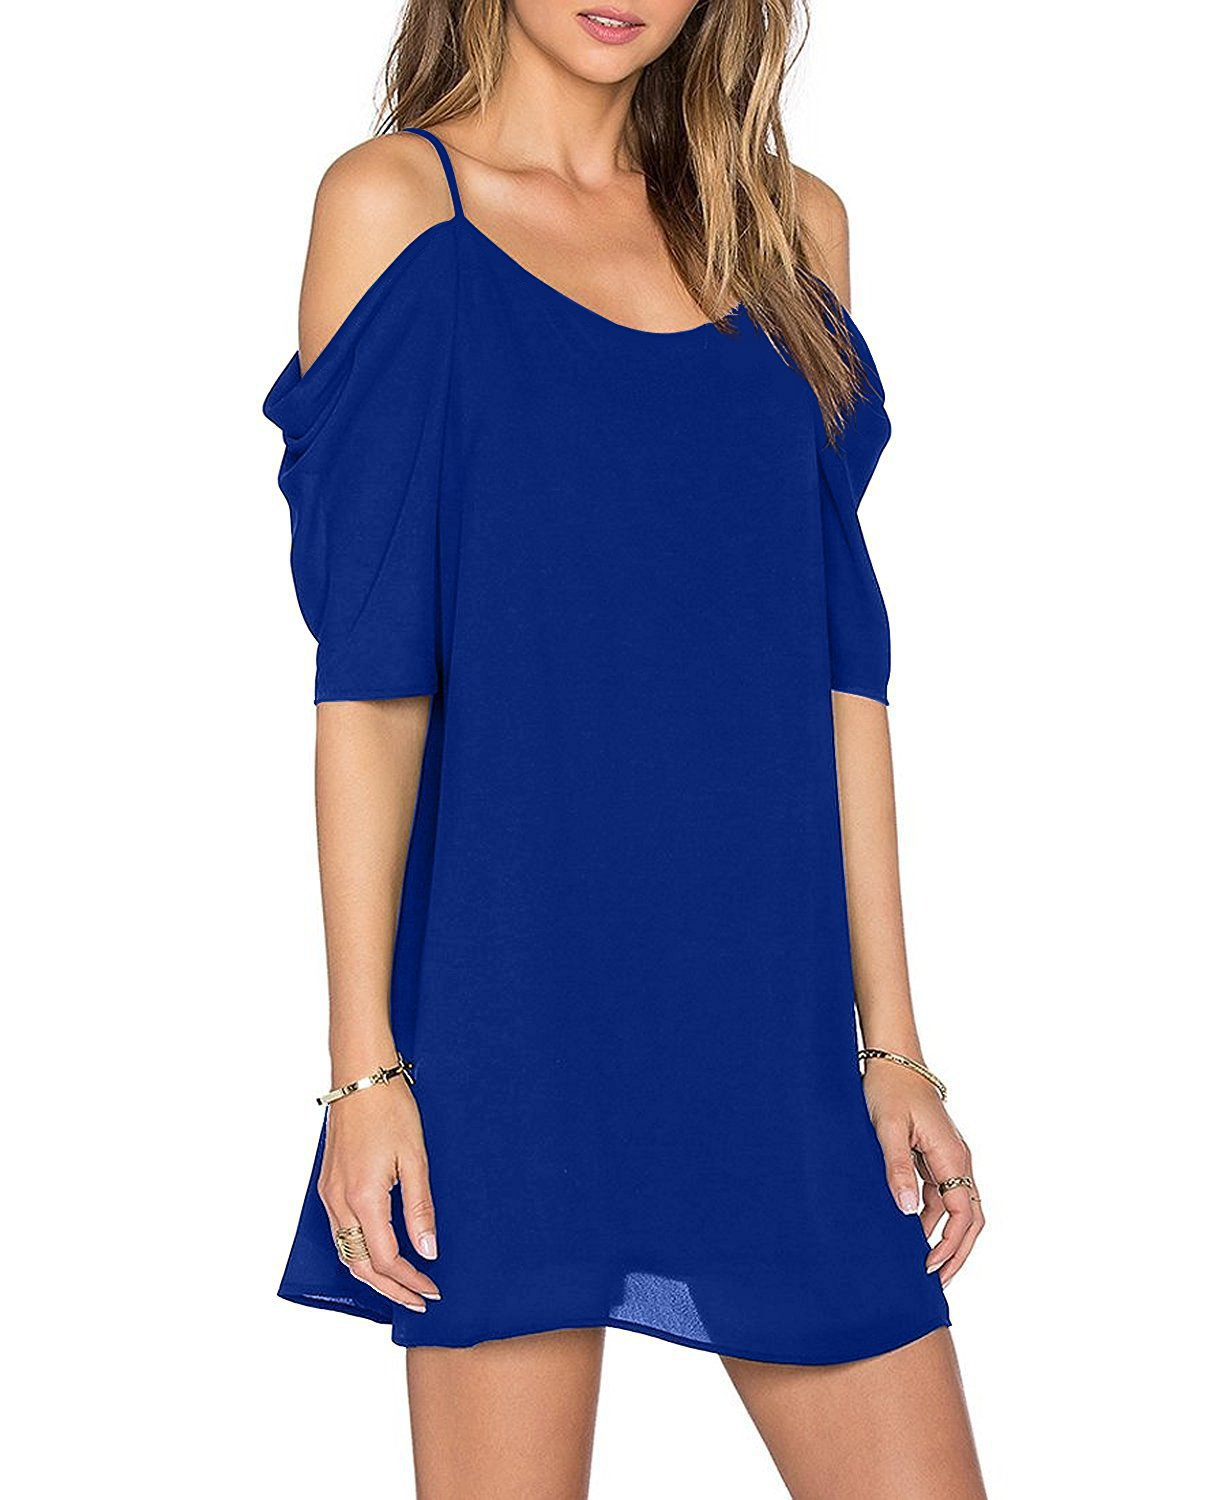 <font><b>6XL</b></font> <font><b>Plus</b></font> <font><b>Size</b></font> Women Fashion Loose Chiffon <font><b>Dresses</b></font> Female Solid Colors <font><b>Sexy</b></font> Off the Shoulder Beach <font><b>Dresses</b></font> Vestidos New image